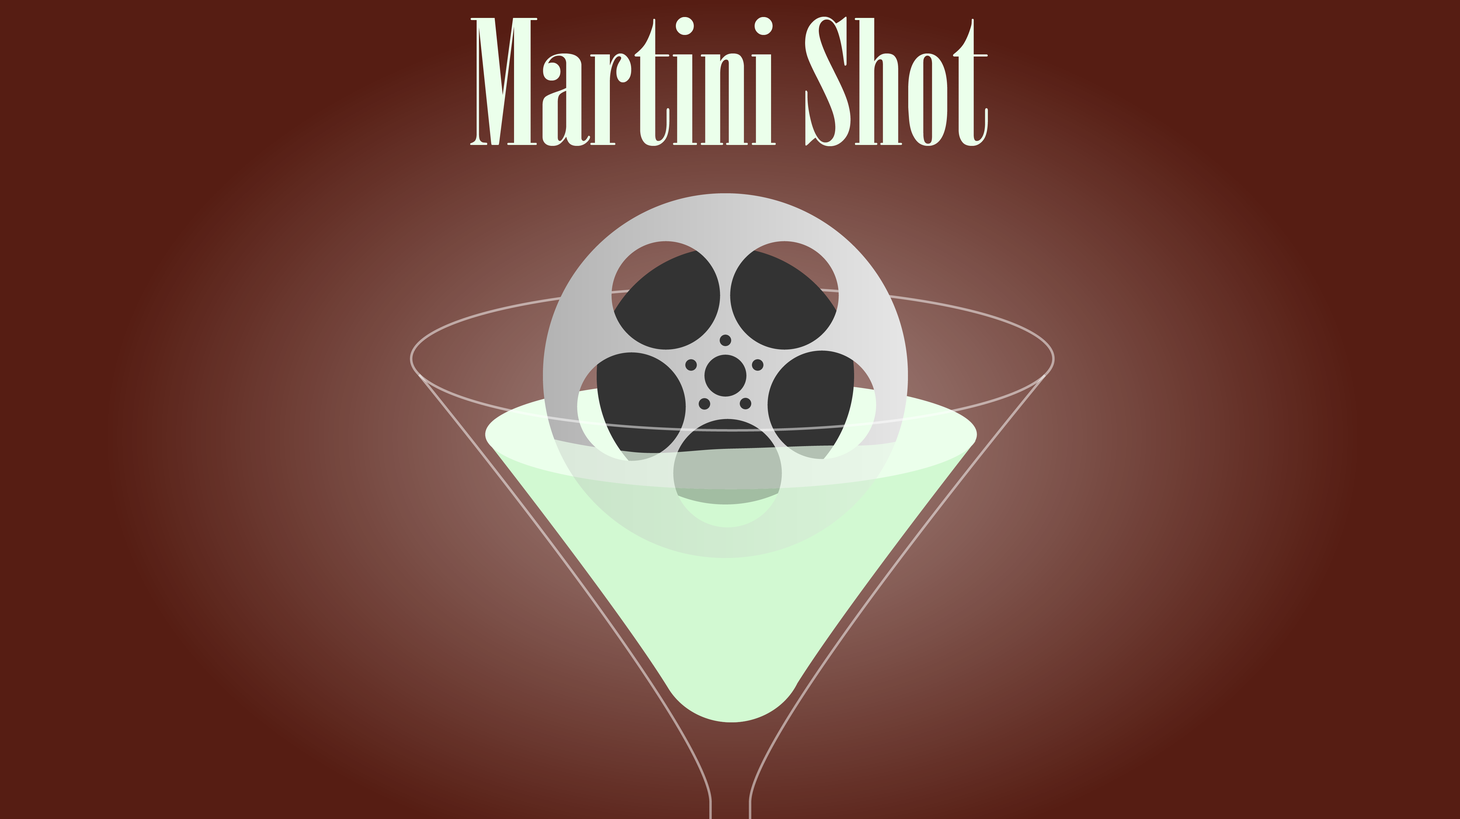 On today's Martini Shot I talk about Roseanne's second week ratings, which were terrific, and what we can learn from that, which is that traditional sitcoms are back, and I make sure everyone listening knows that I am currently represented.